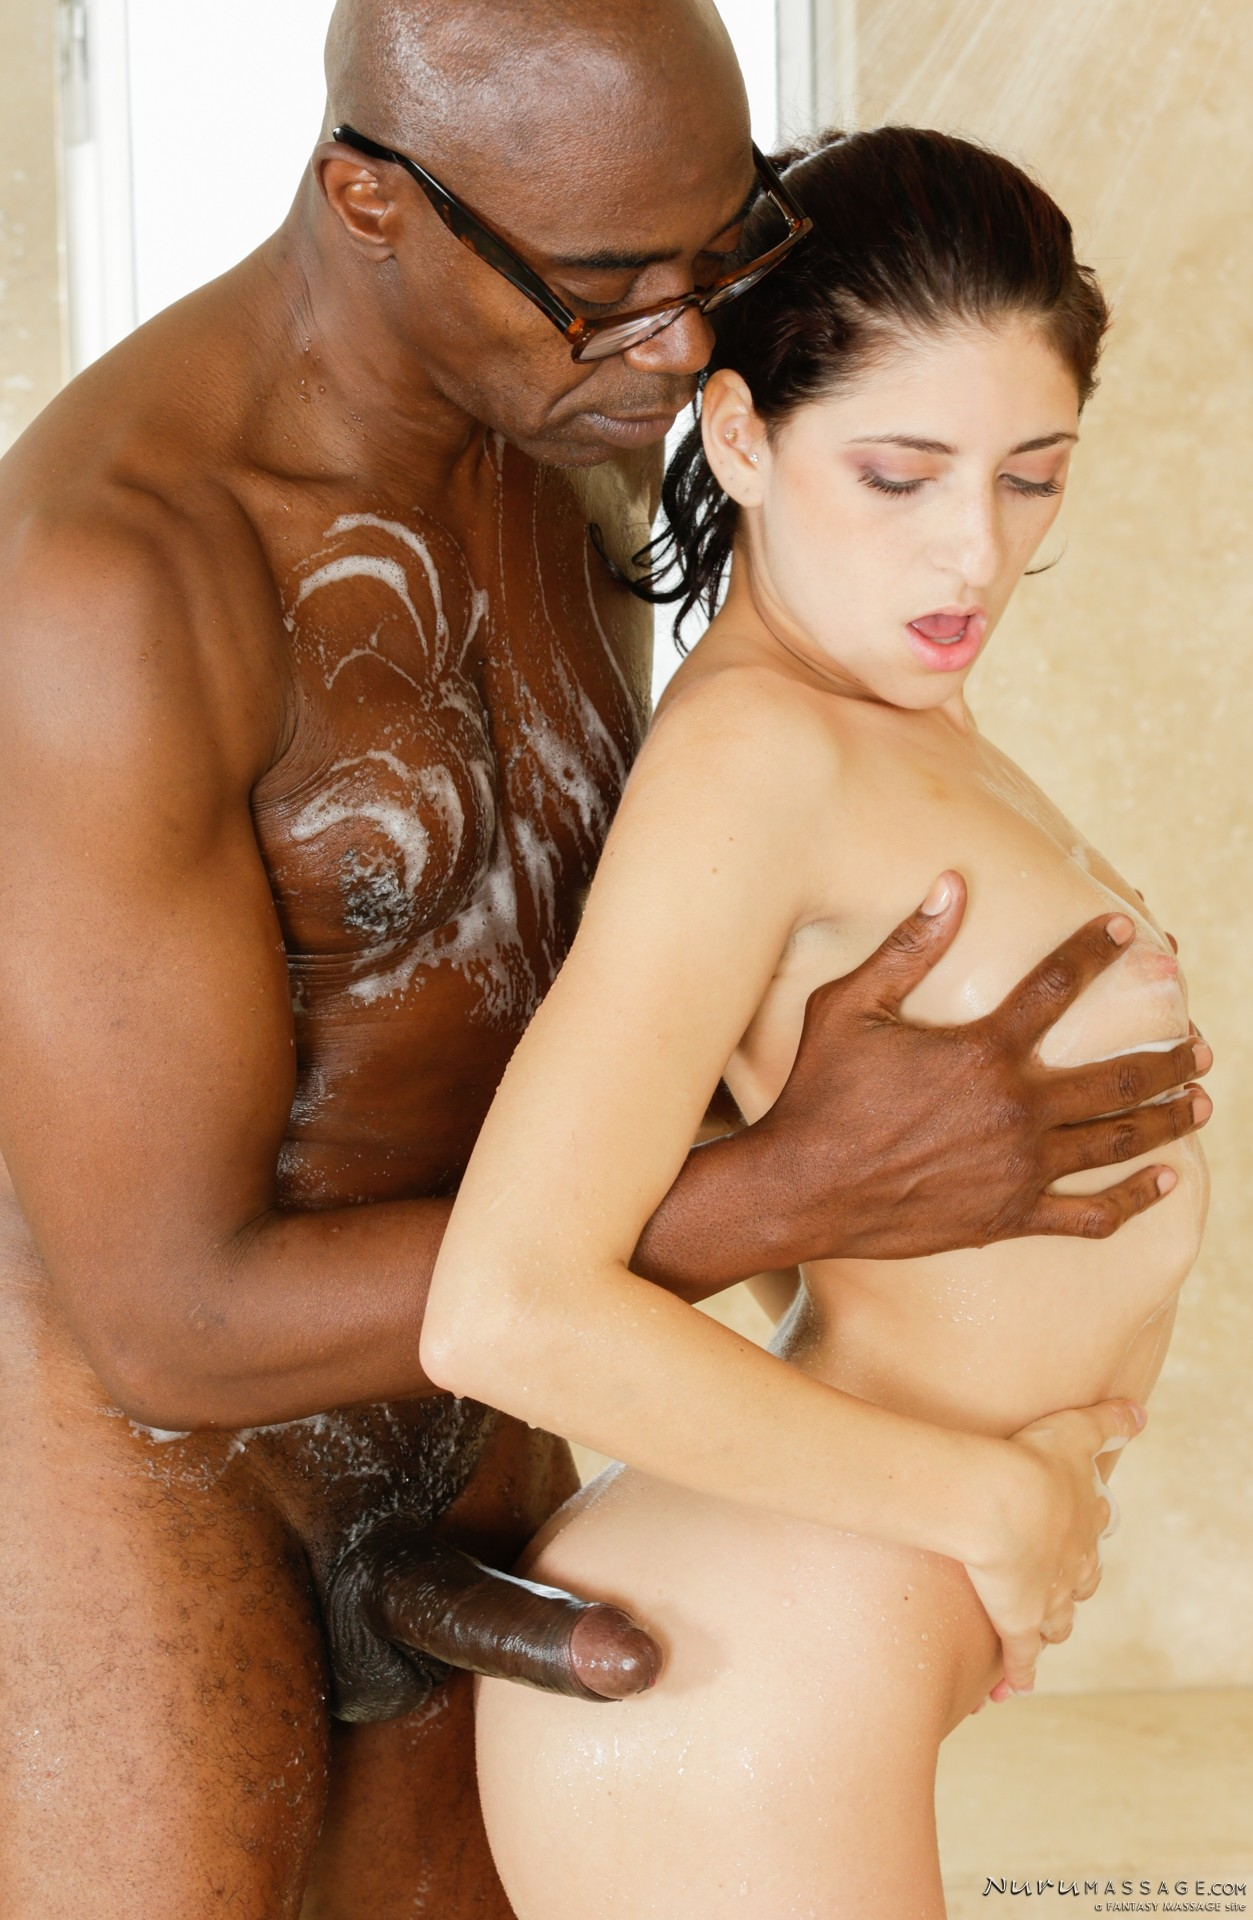 Black schlong treatment for black hottie 9